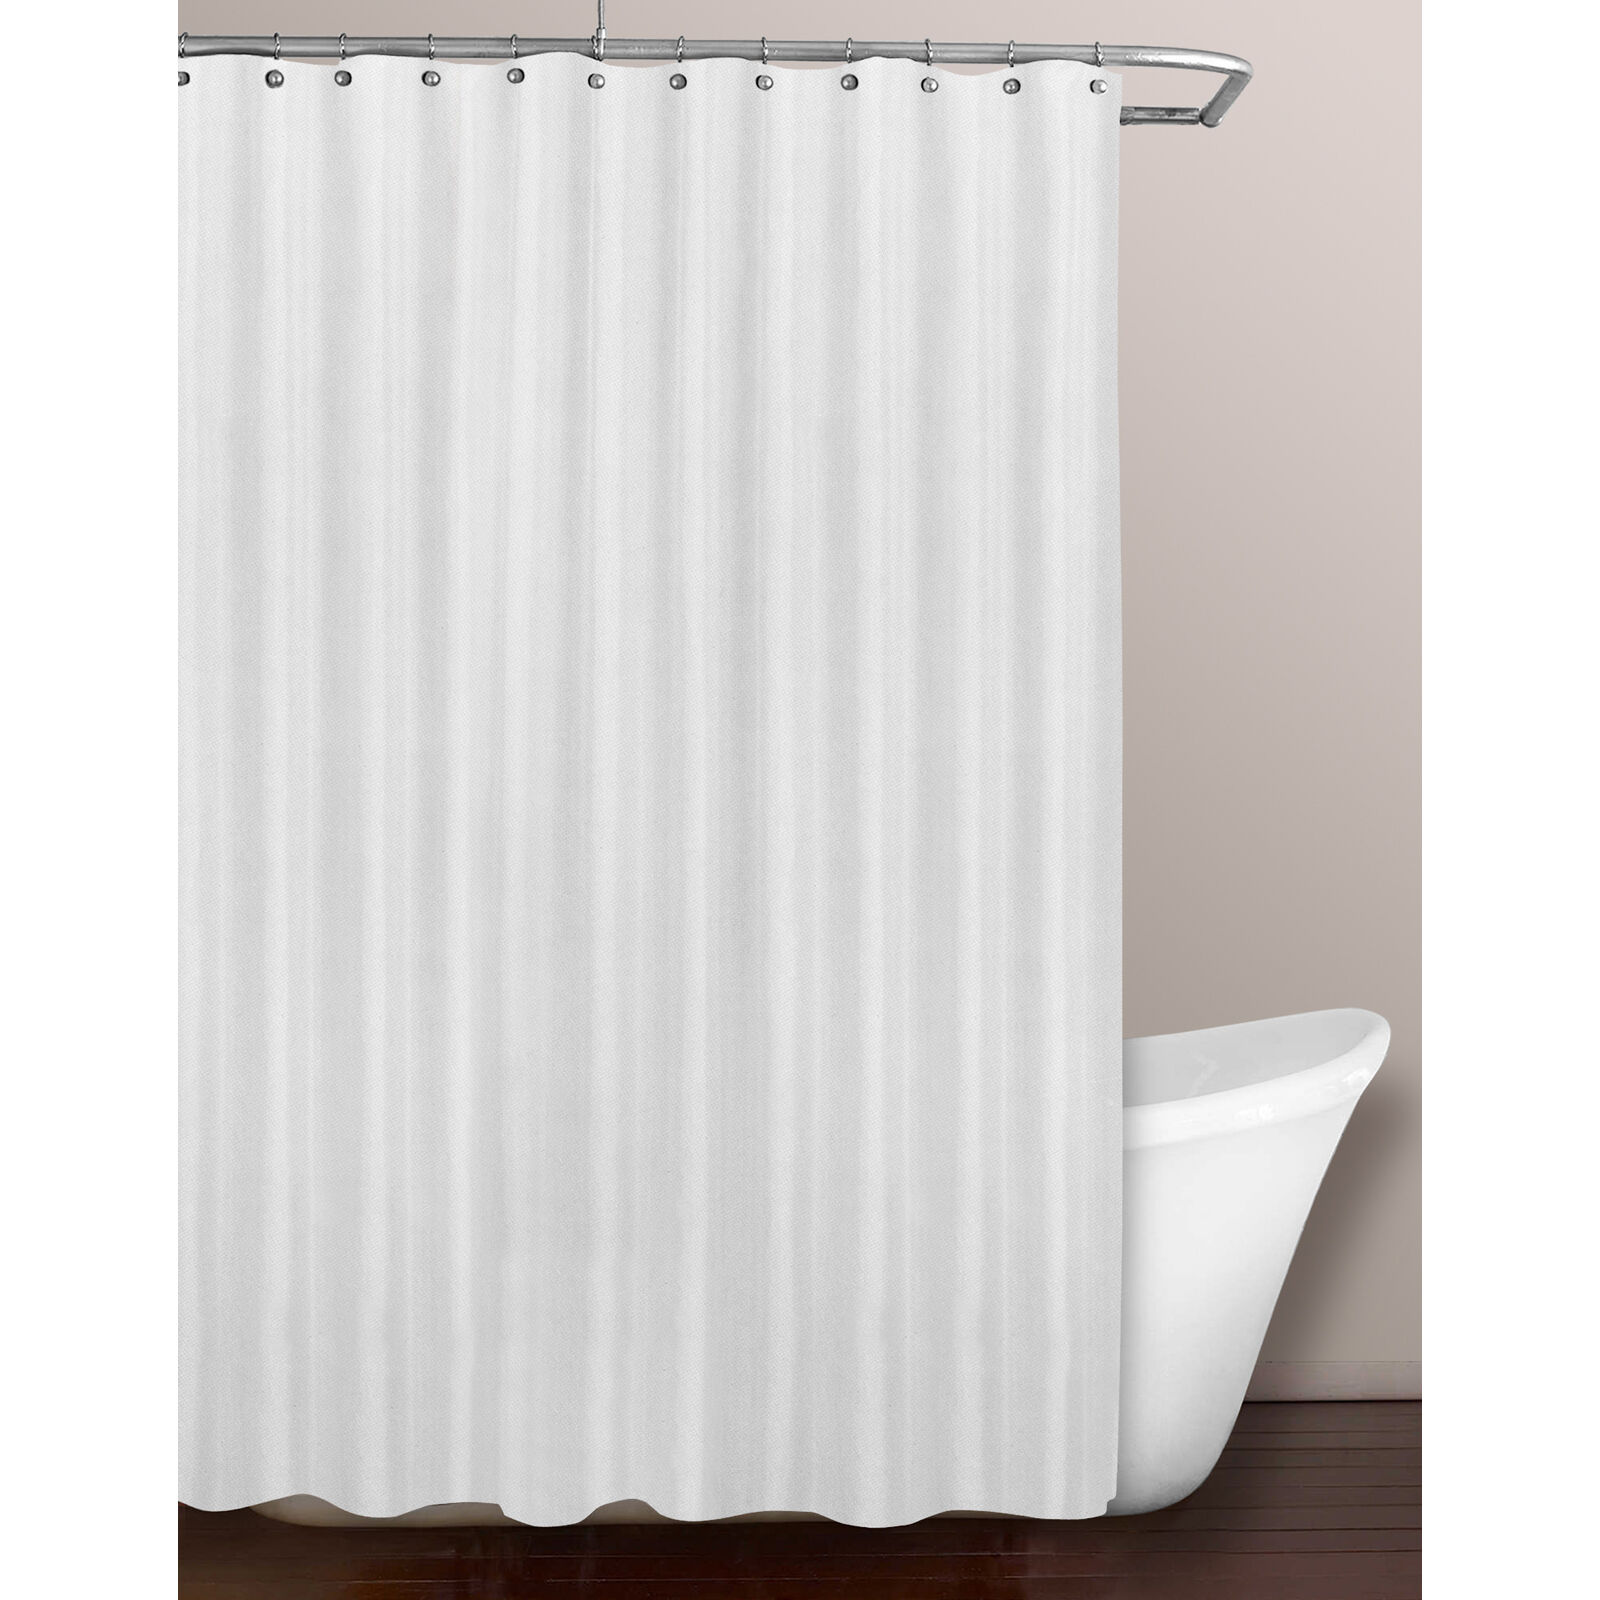 White Fabric Shower Curtain Liner At Home